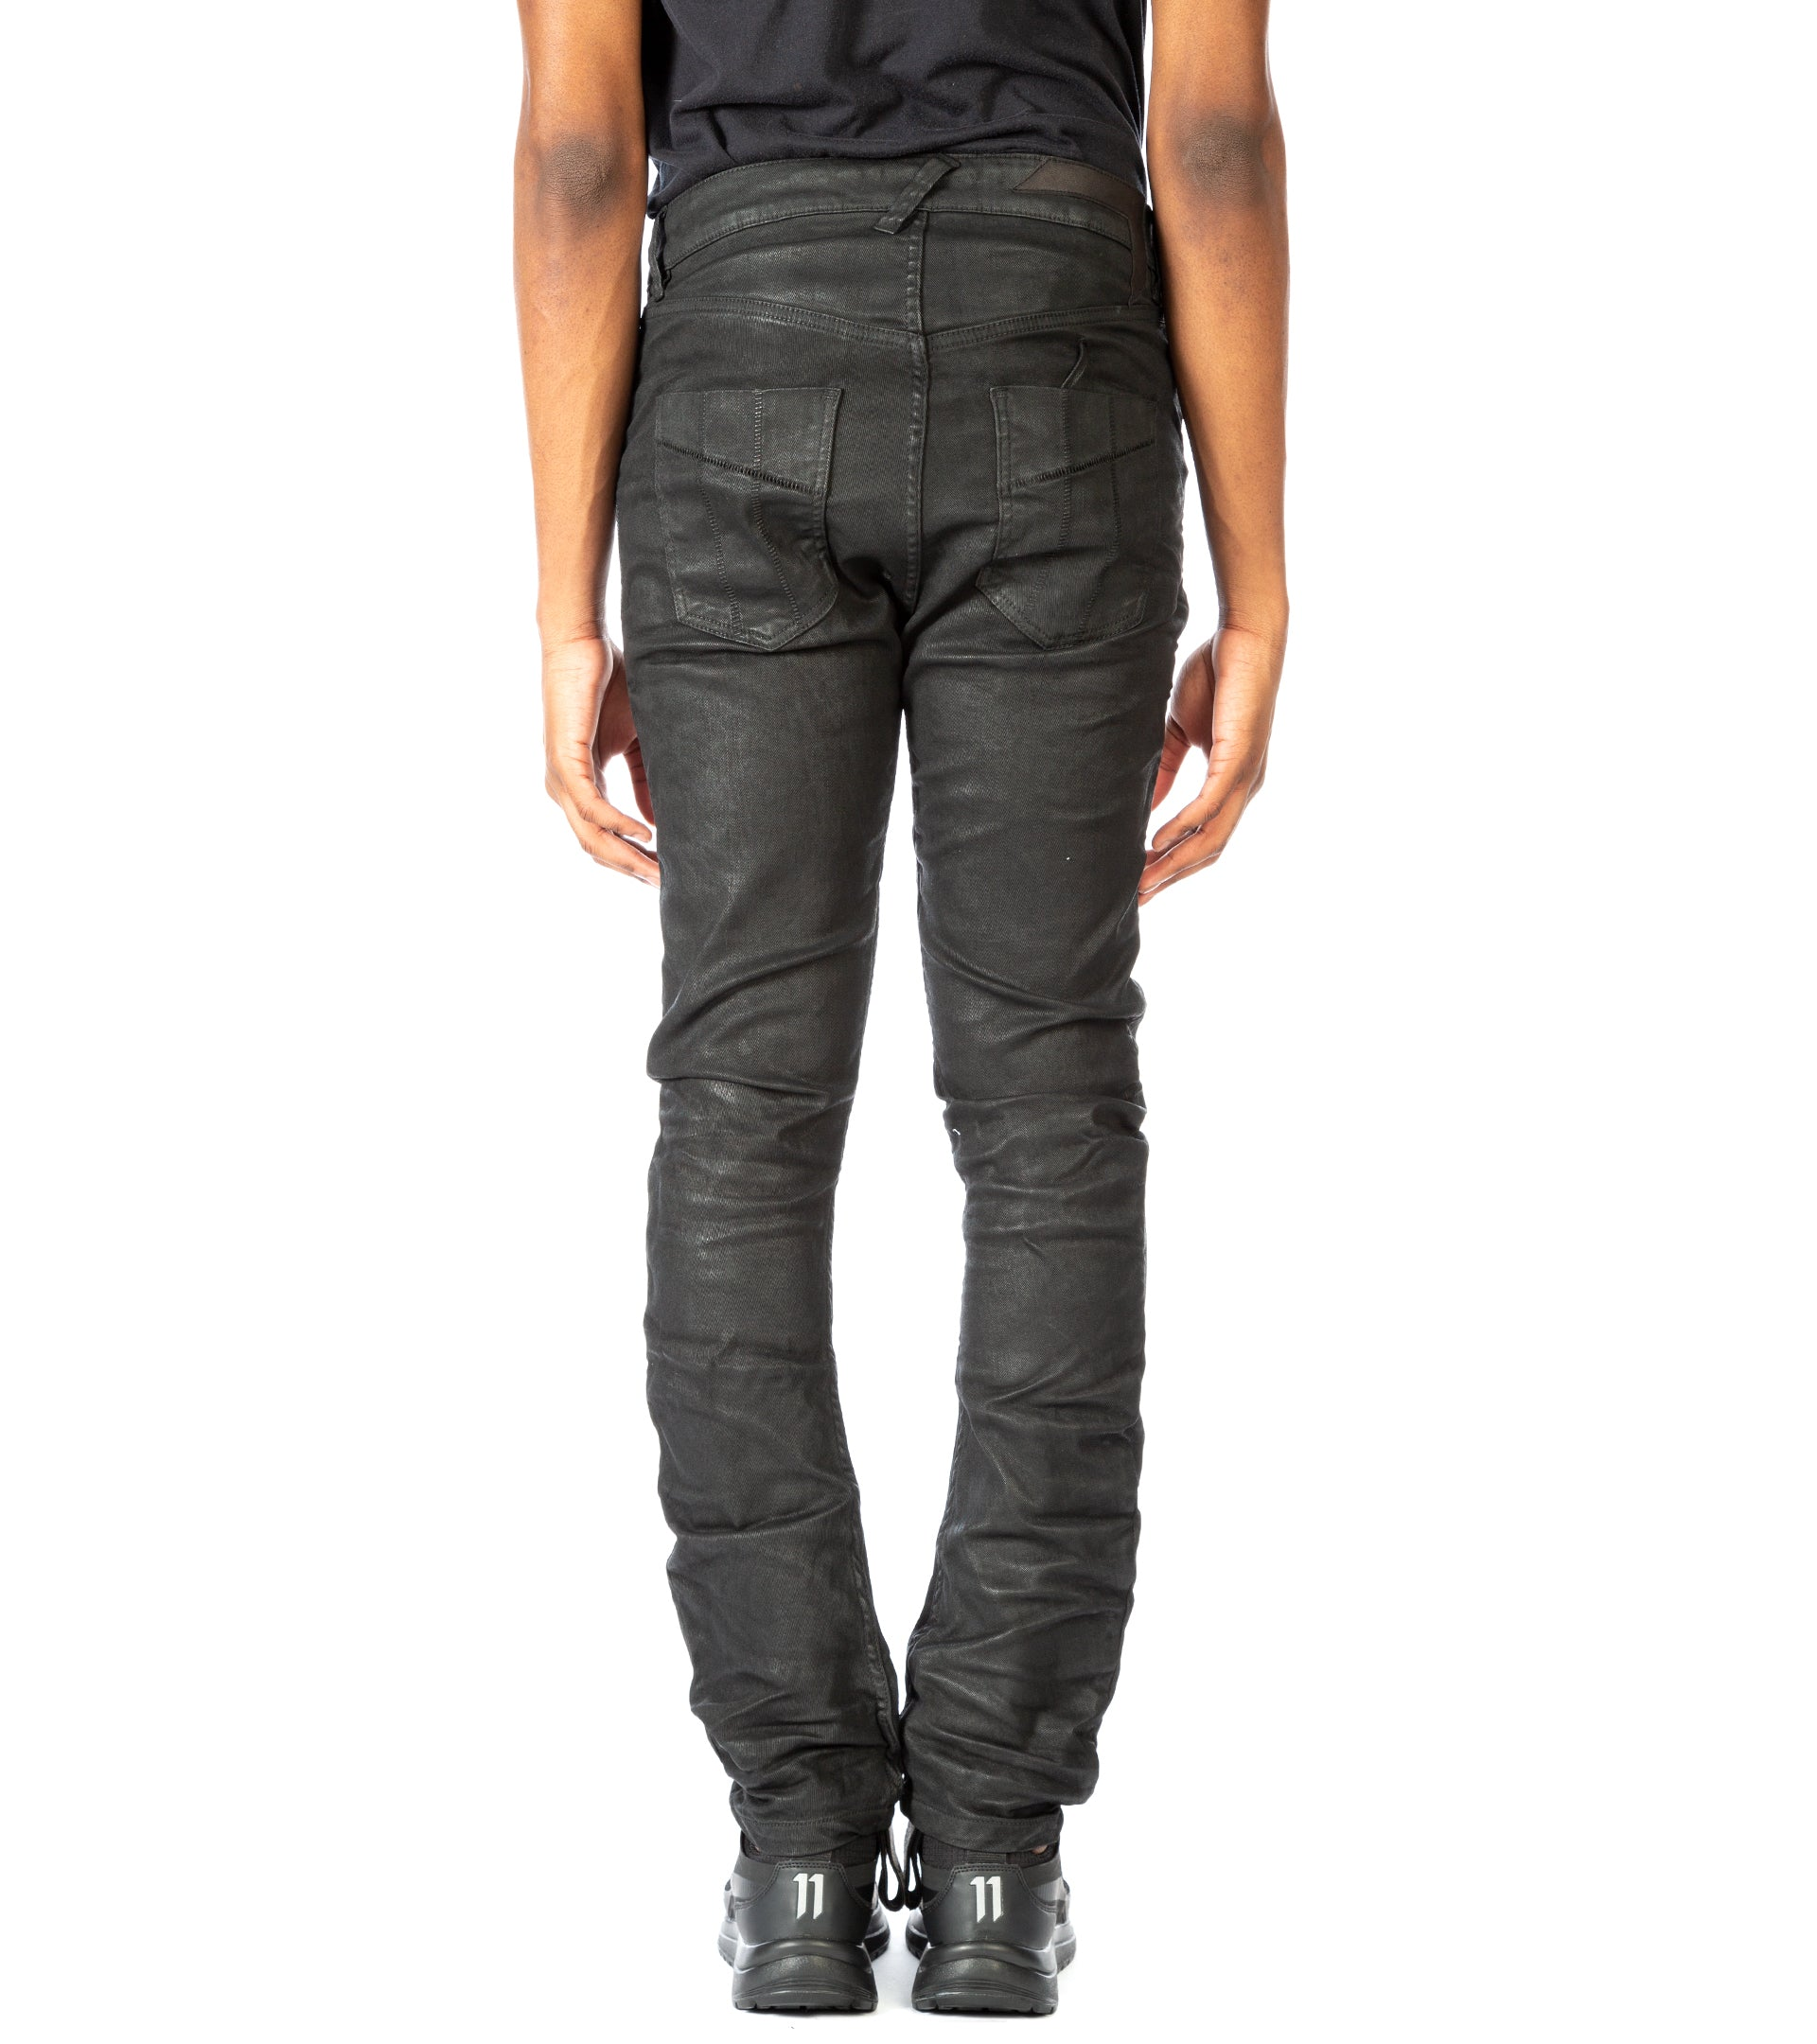 BLACK WAXED DENIM